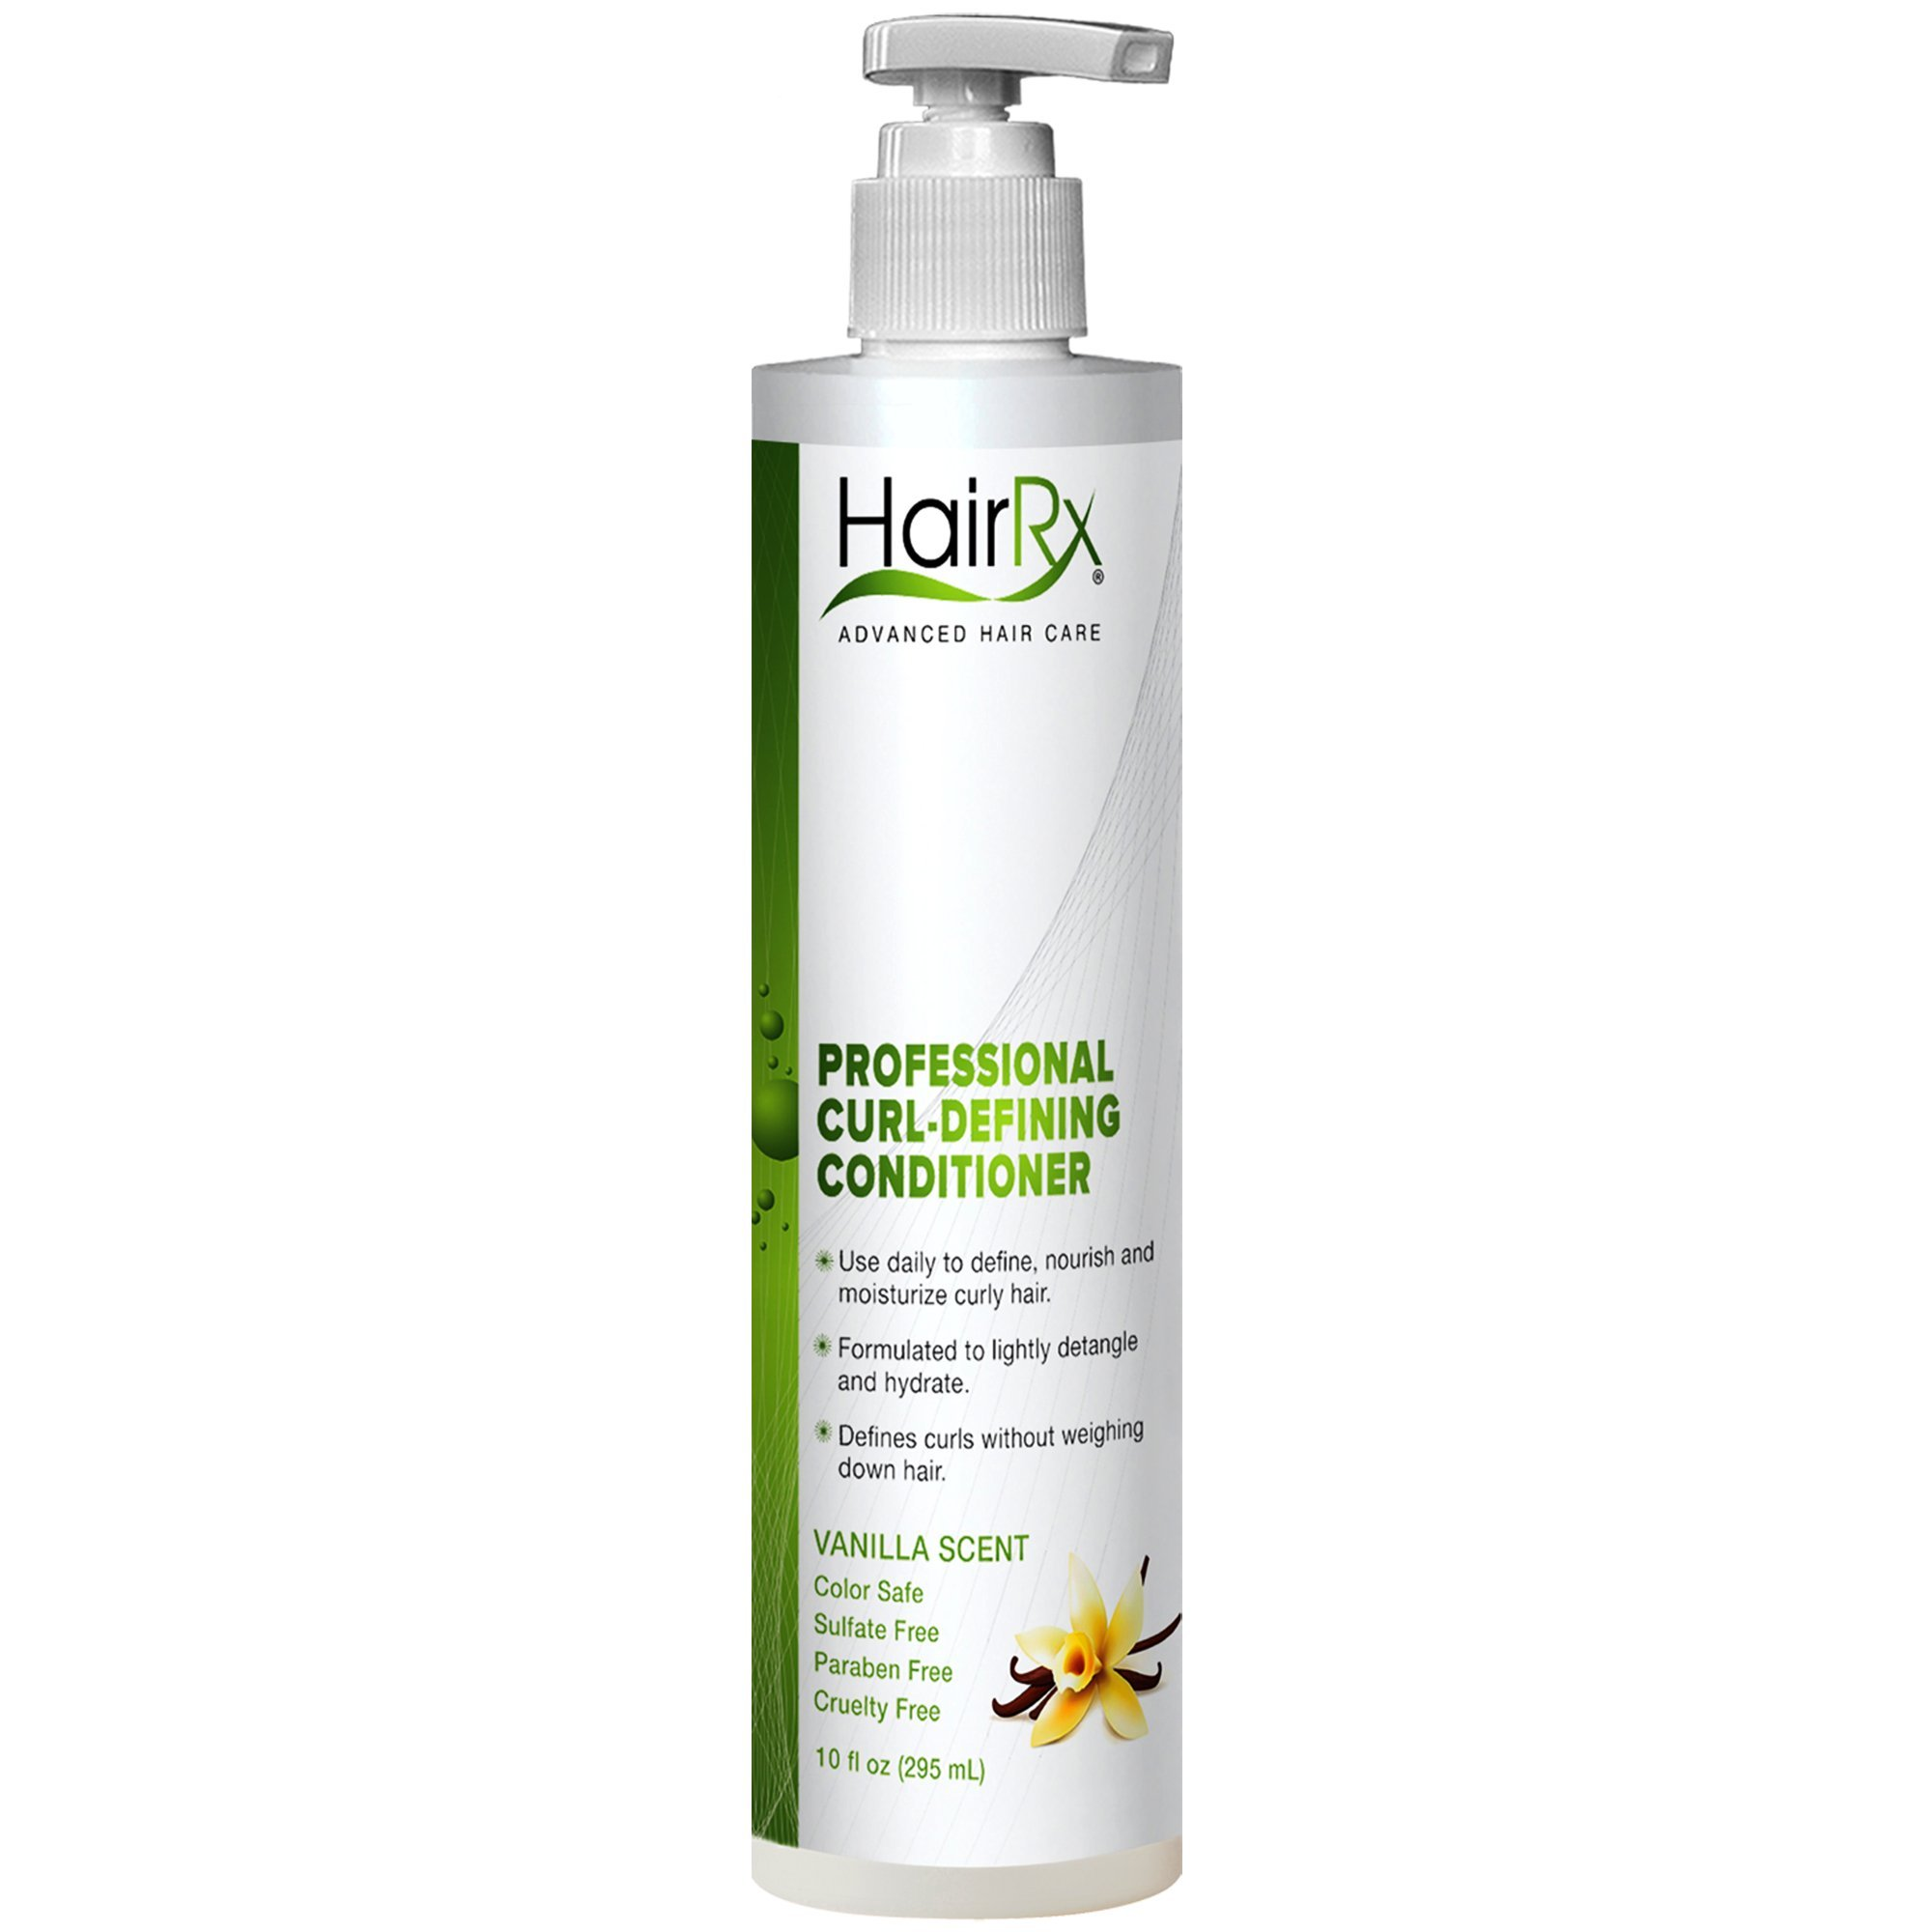 HairRx Professional Curl-Defining Conditioner with Pump, Vanilla Scent, 10 Ounce